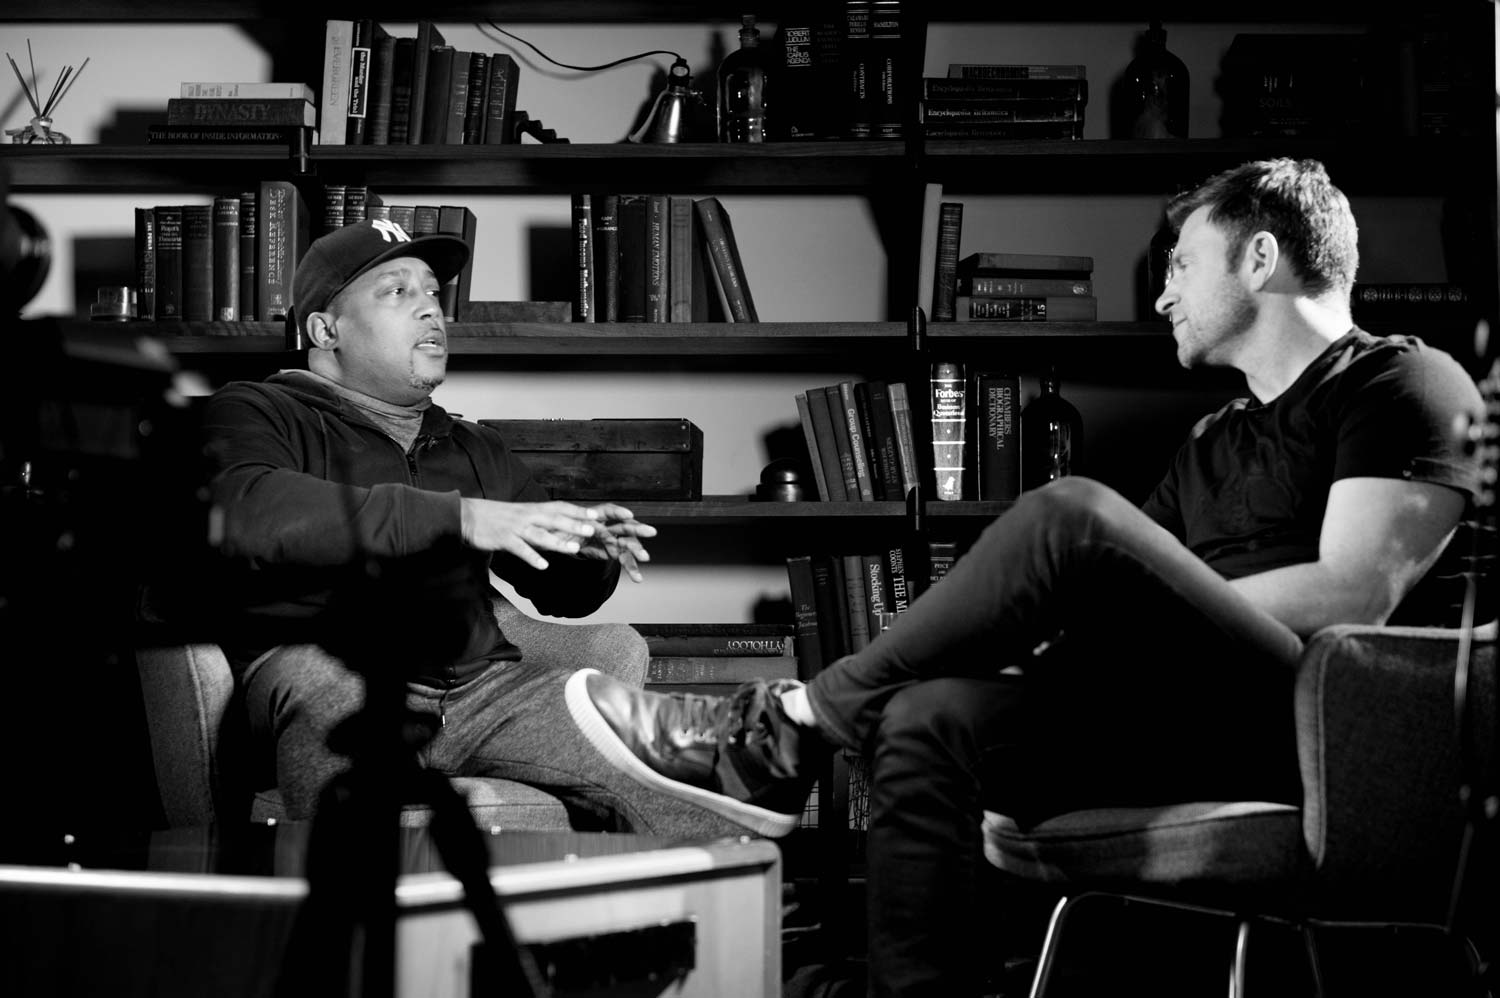 Daymond John and Chase Jarvis on 30 Days Of Genius